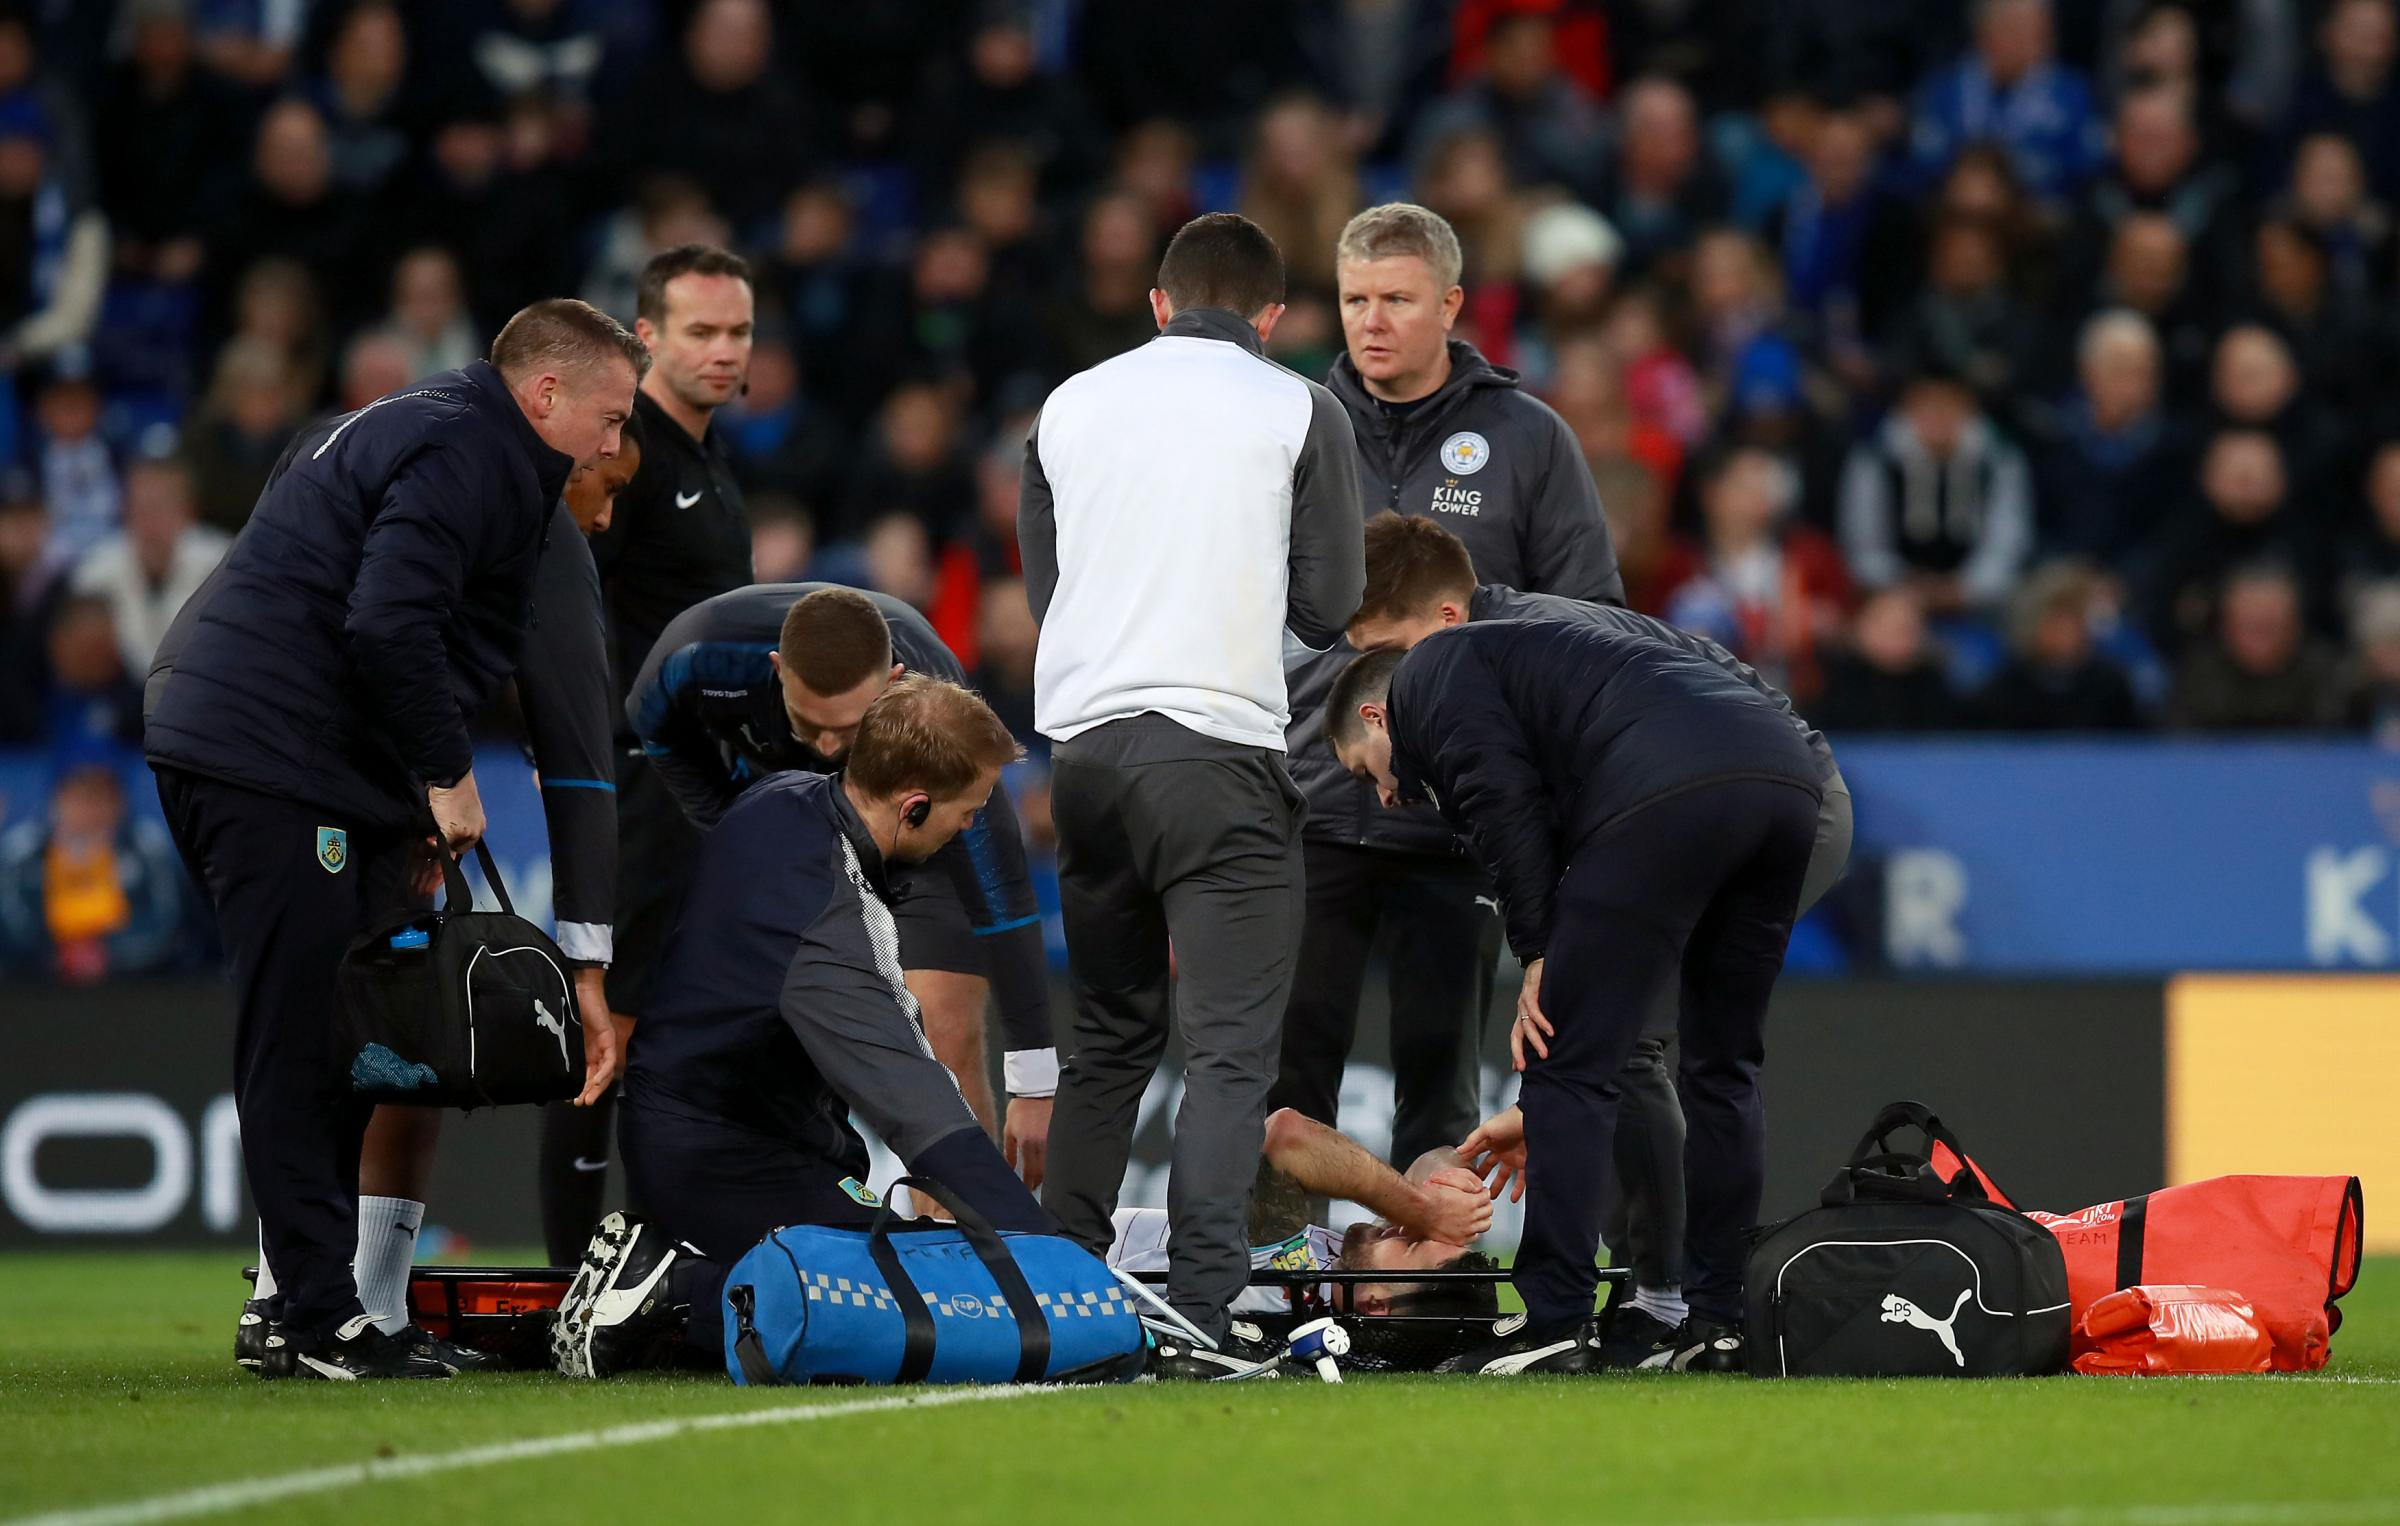 Robbie Brady was stretchered off against Leicester City last weekend